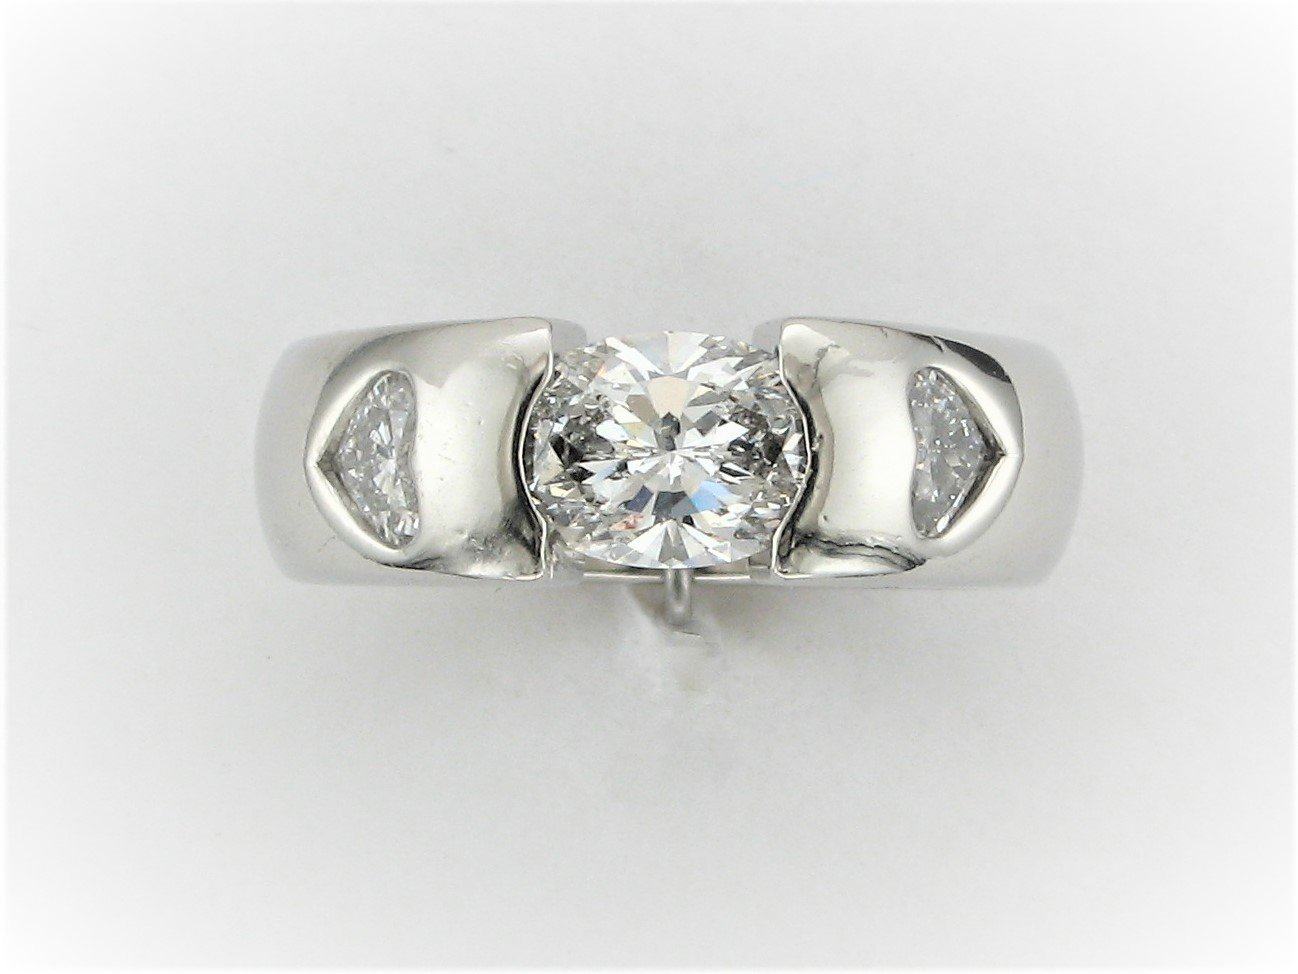 Designer Oval and Heart Diamond Ring Set in Platinum